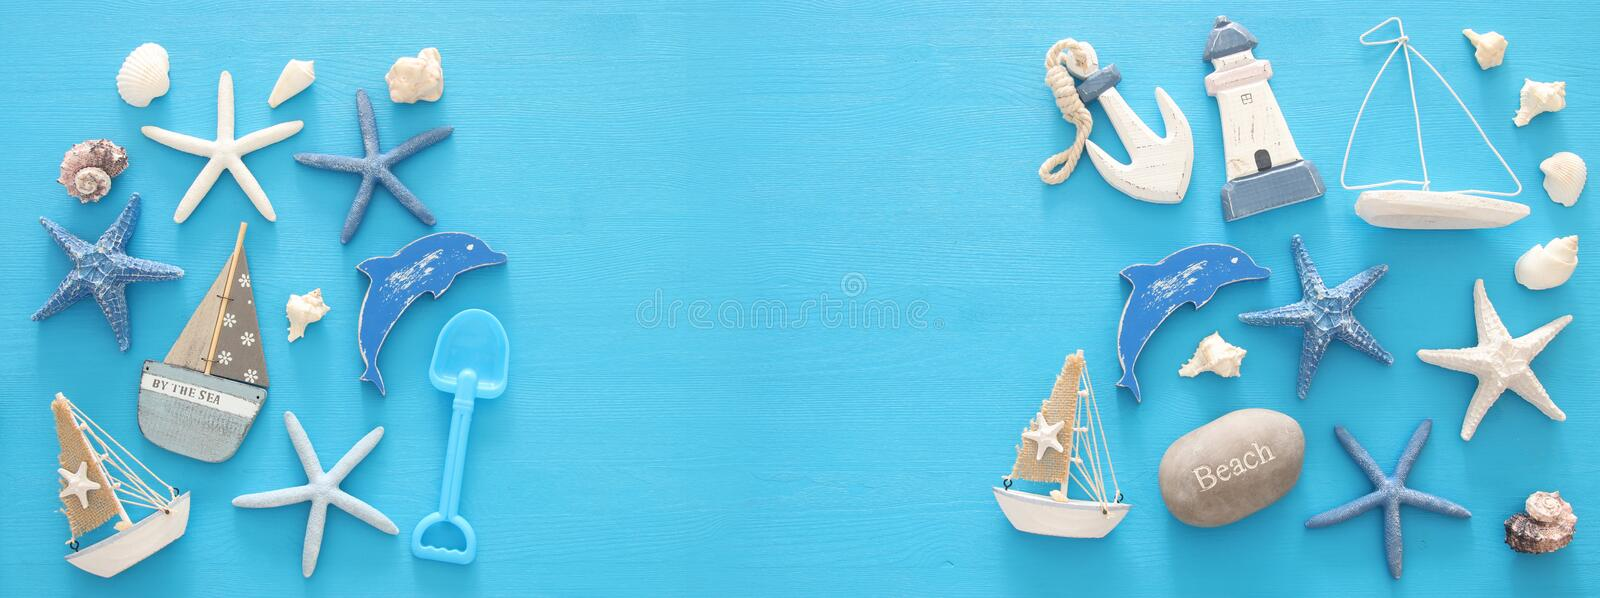 Nautical, vacation and travel banner with sea life style objects. Top view. Nautical, vacation and travel banner with sea life style objects. Top view royalty free stock image